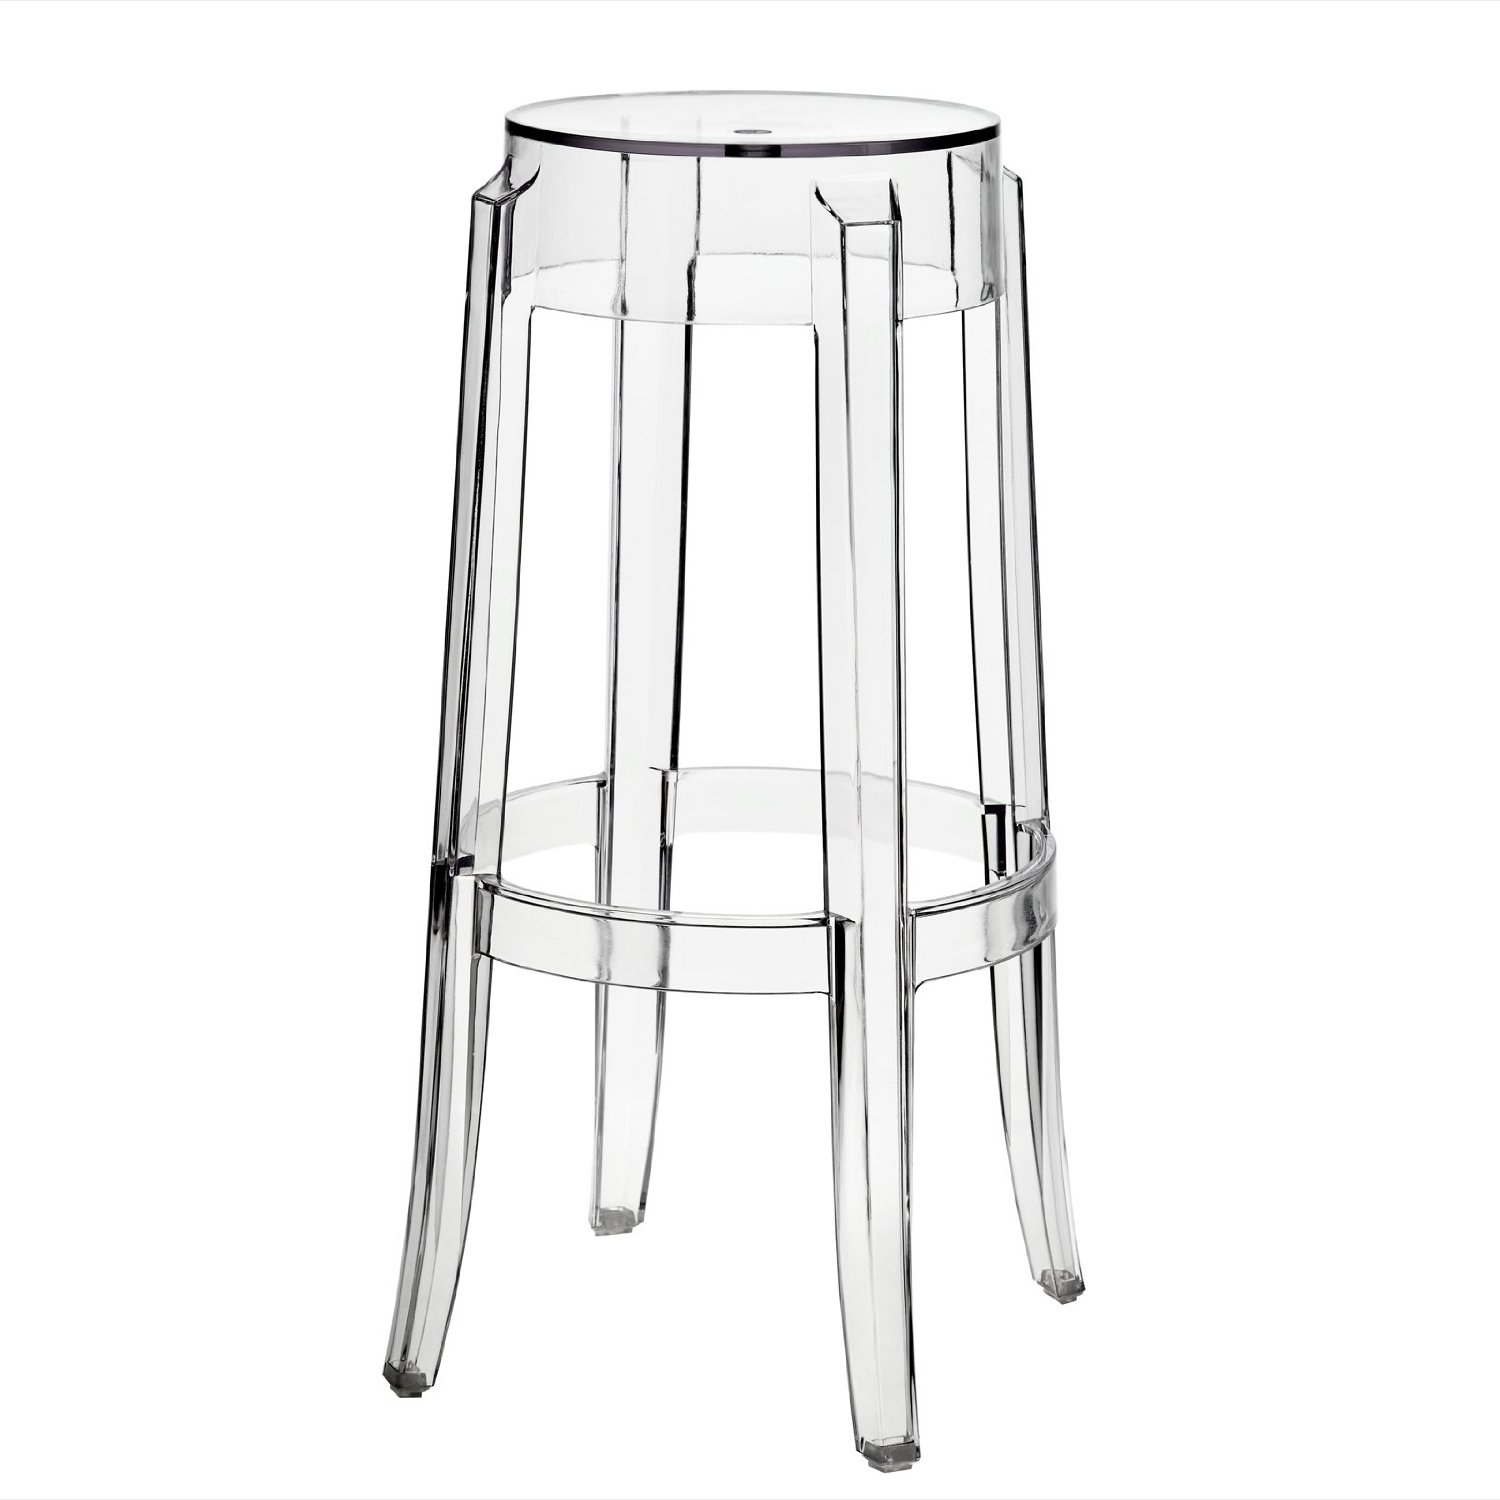 LexMod Philippe Starck Style Charles Ghost Bar Stool (set of 2)